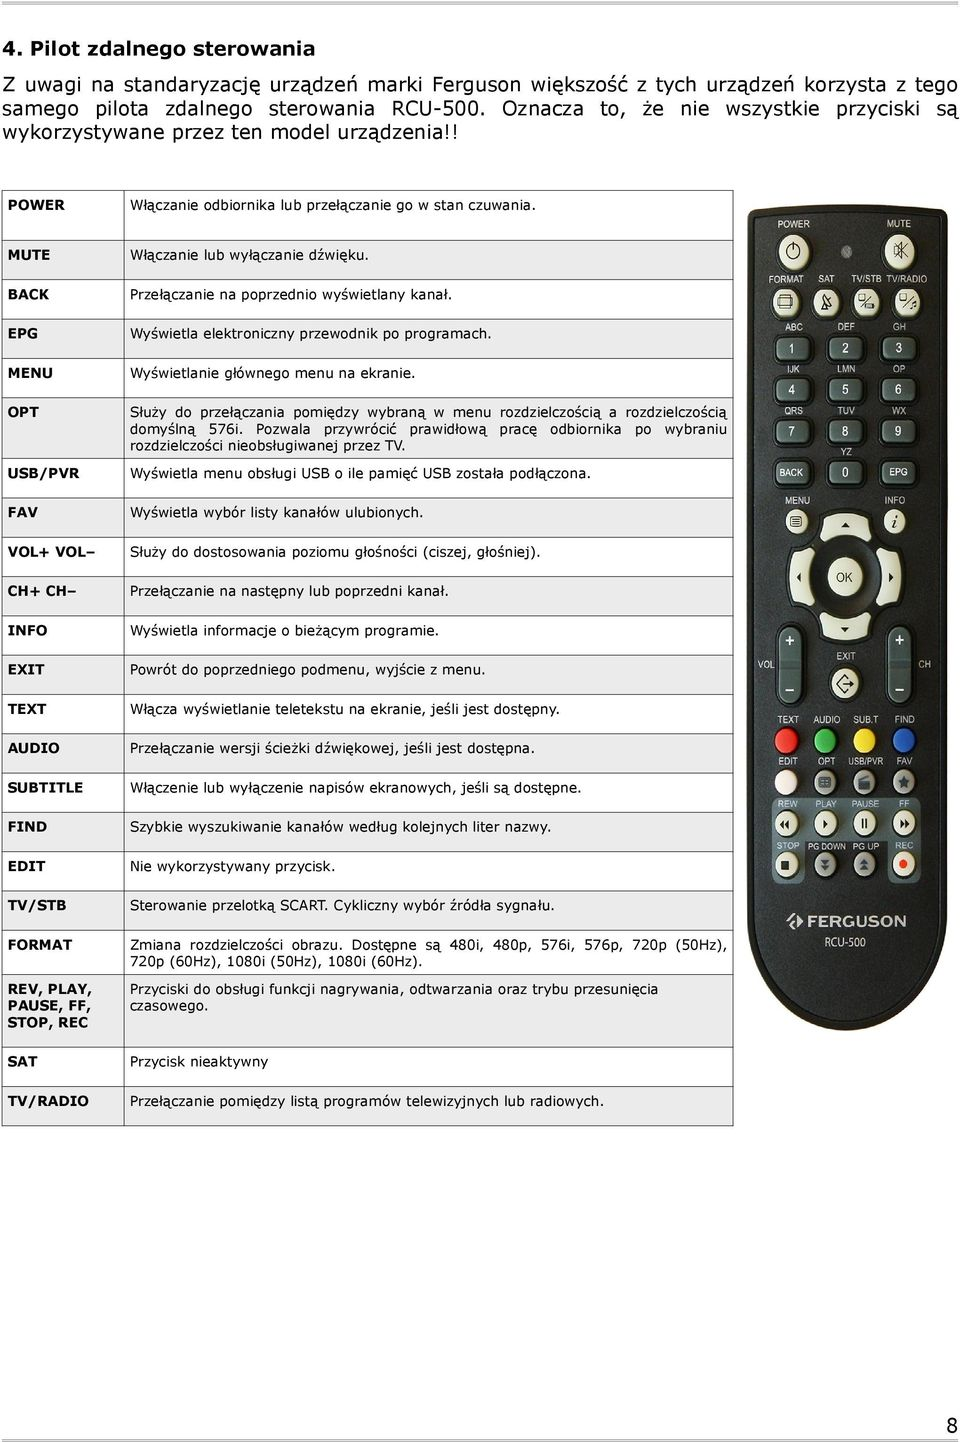 MUTE BACK EPG MENU OPT USB/PVR FAV VOL+ VOL CH+ CH INFO EXIT TEXT AUDIO SUBTITLE FIND EDIT TV/STB FORMAT REV, PLAY, PAUSE, FF, STOP, REC SAT TV/RADIO Włączanie lub wyłączanie dźwięku.